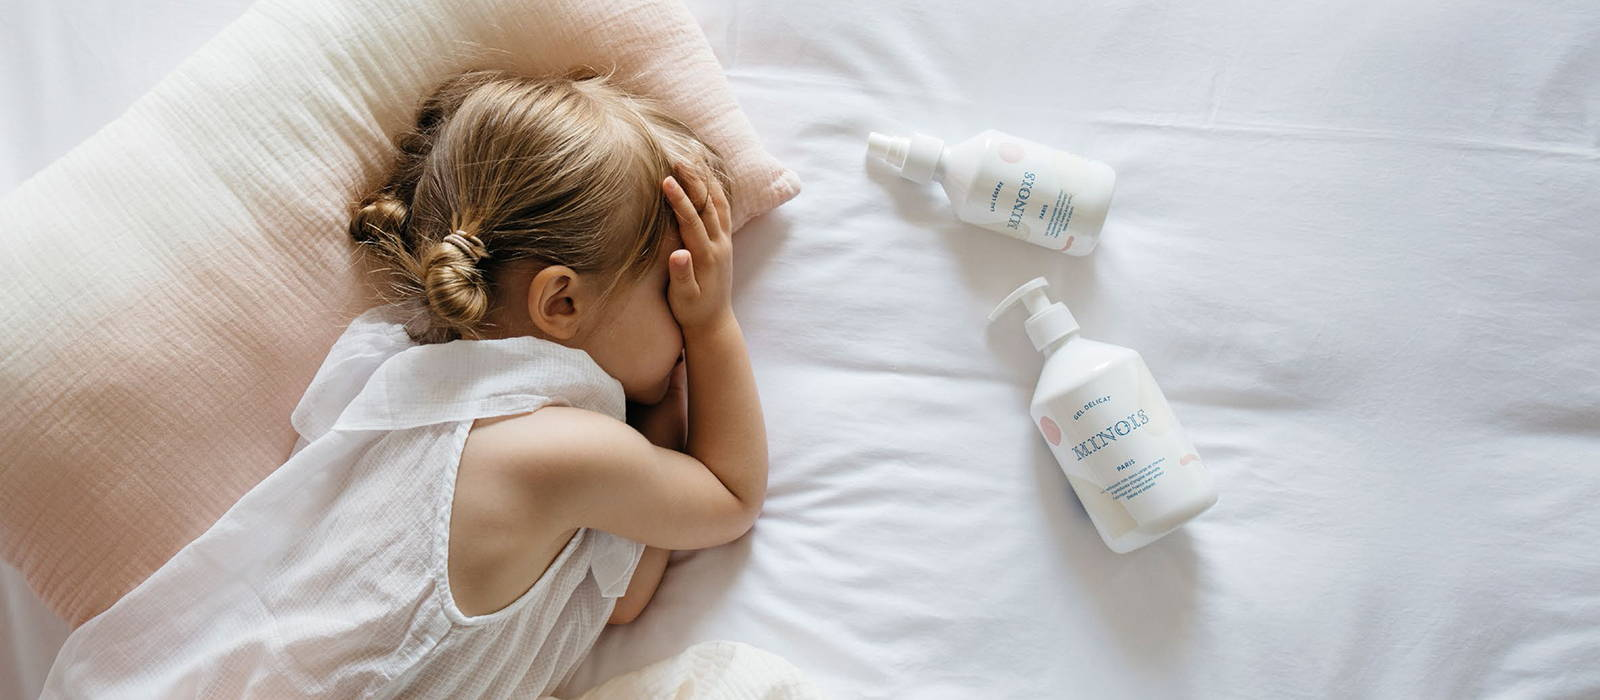 Delicate Gels from Minois photographed alongside a small child lying down on linen. Minois Delicate Gel is sold at The Hambledon.